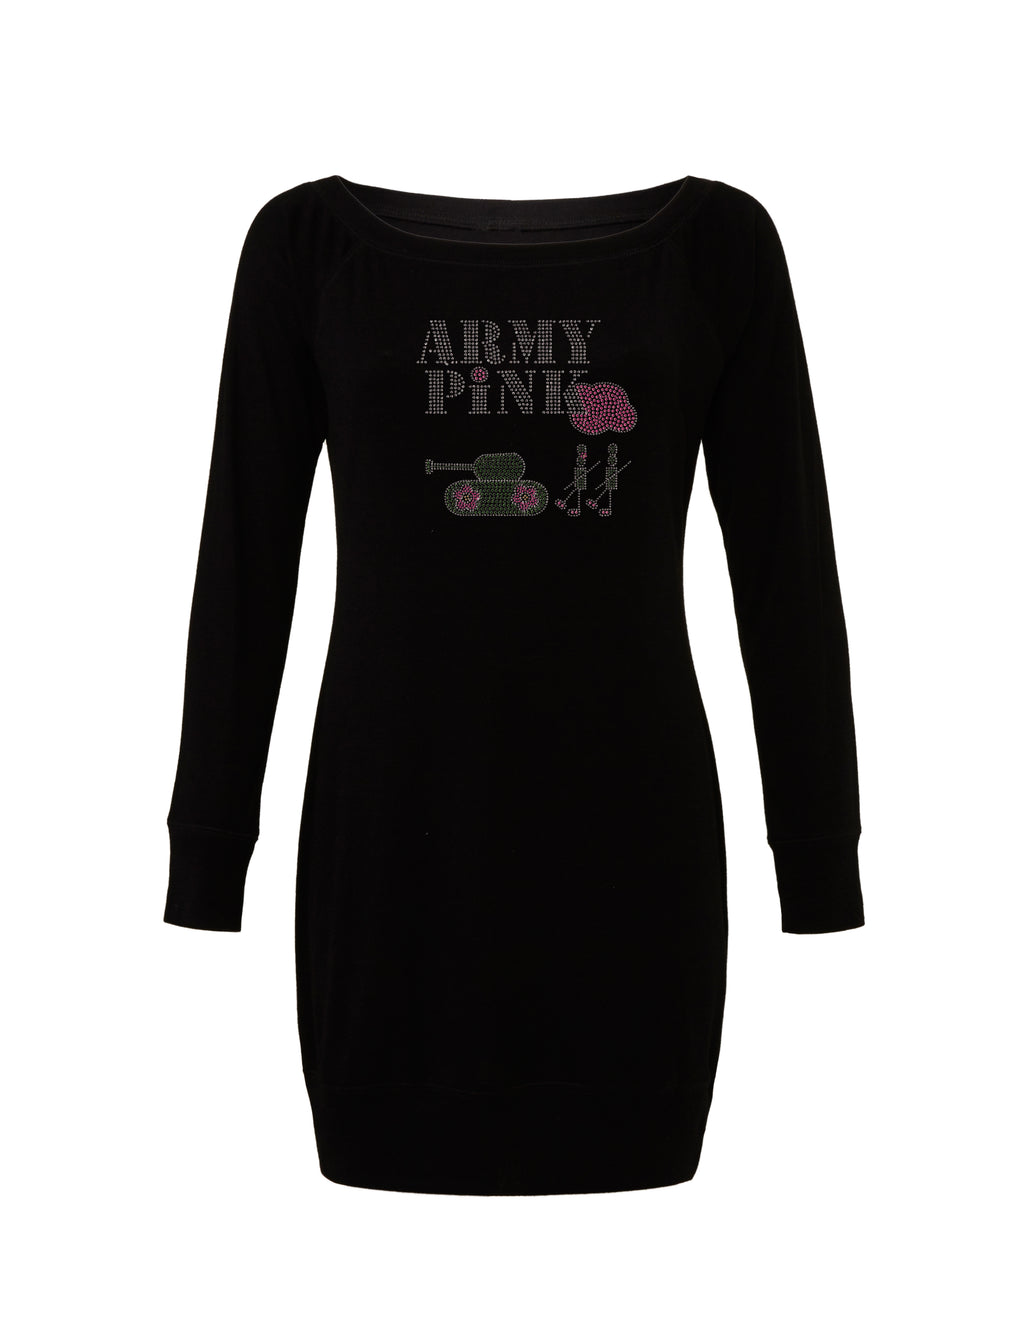 Black Lightweight Sweater Dress with rhinestud logo for 64.00 at ARMY PINK